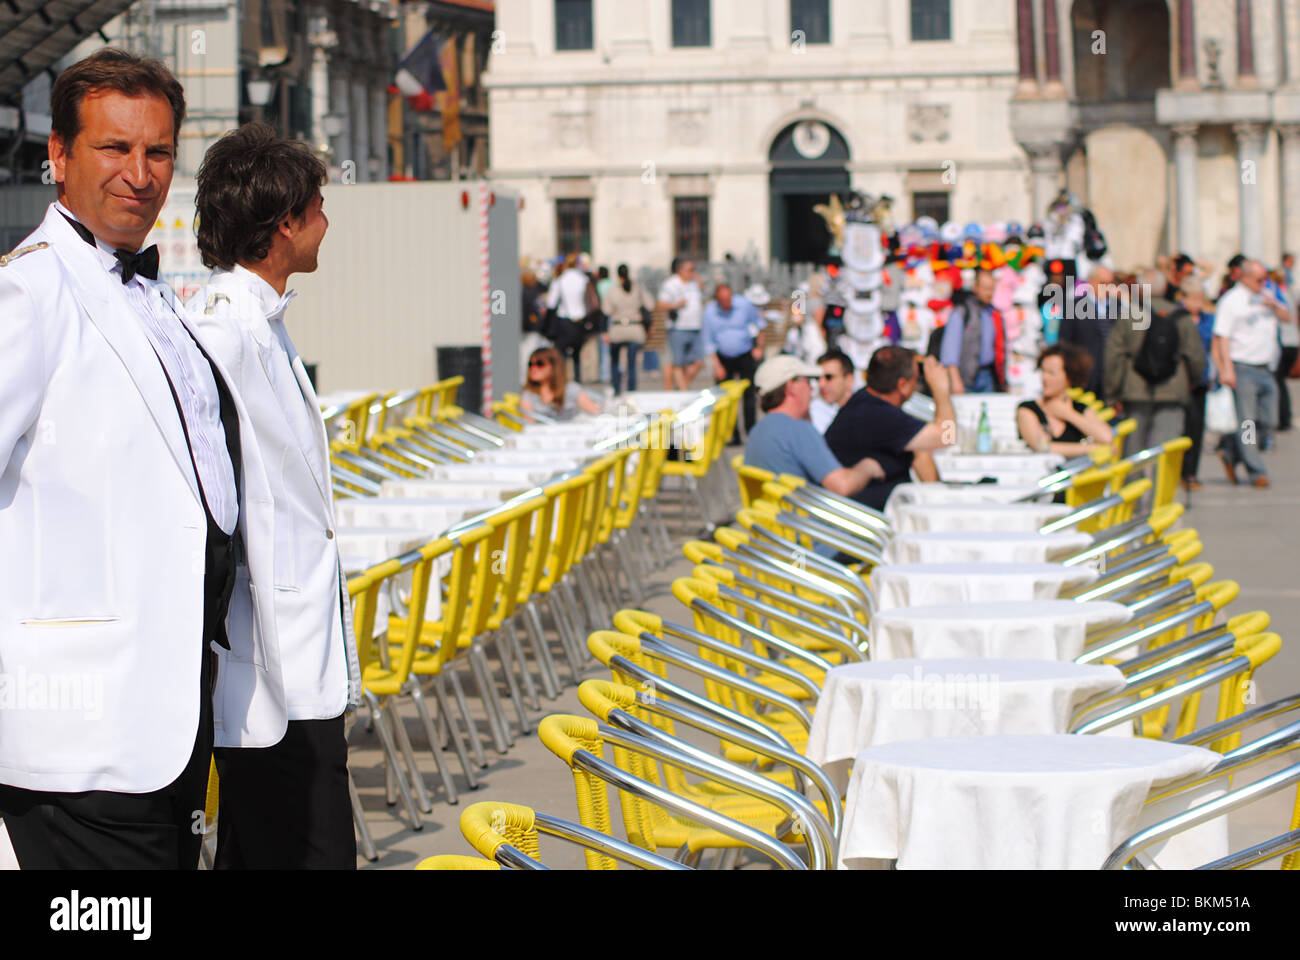 Waiters stand by empty tables at a cafe in St Mark's Square, Venice, Italy - Stock Image